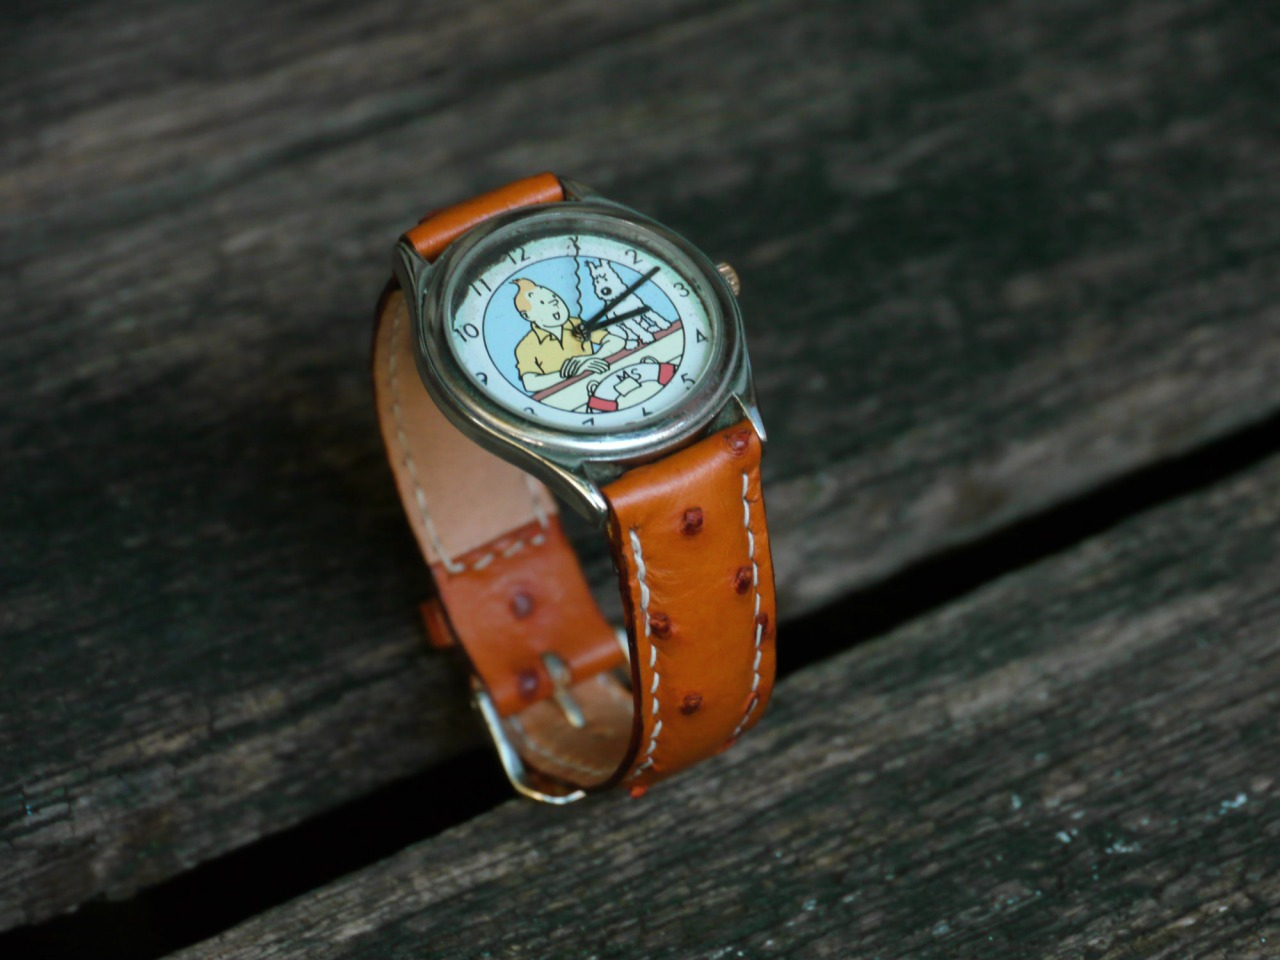 Les adventures de Tintin watch with an Ostrich strap